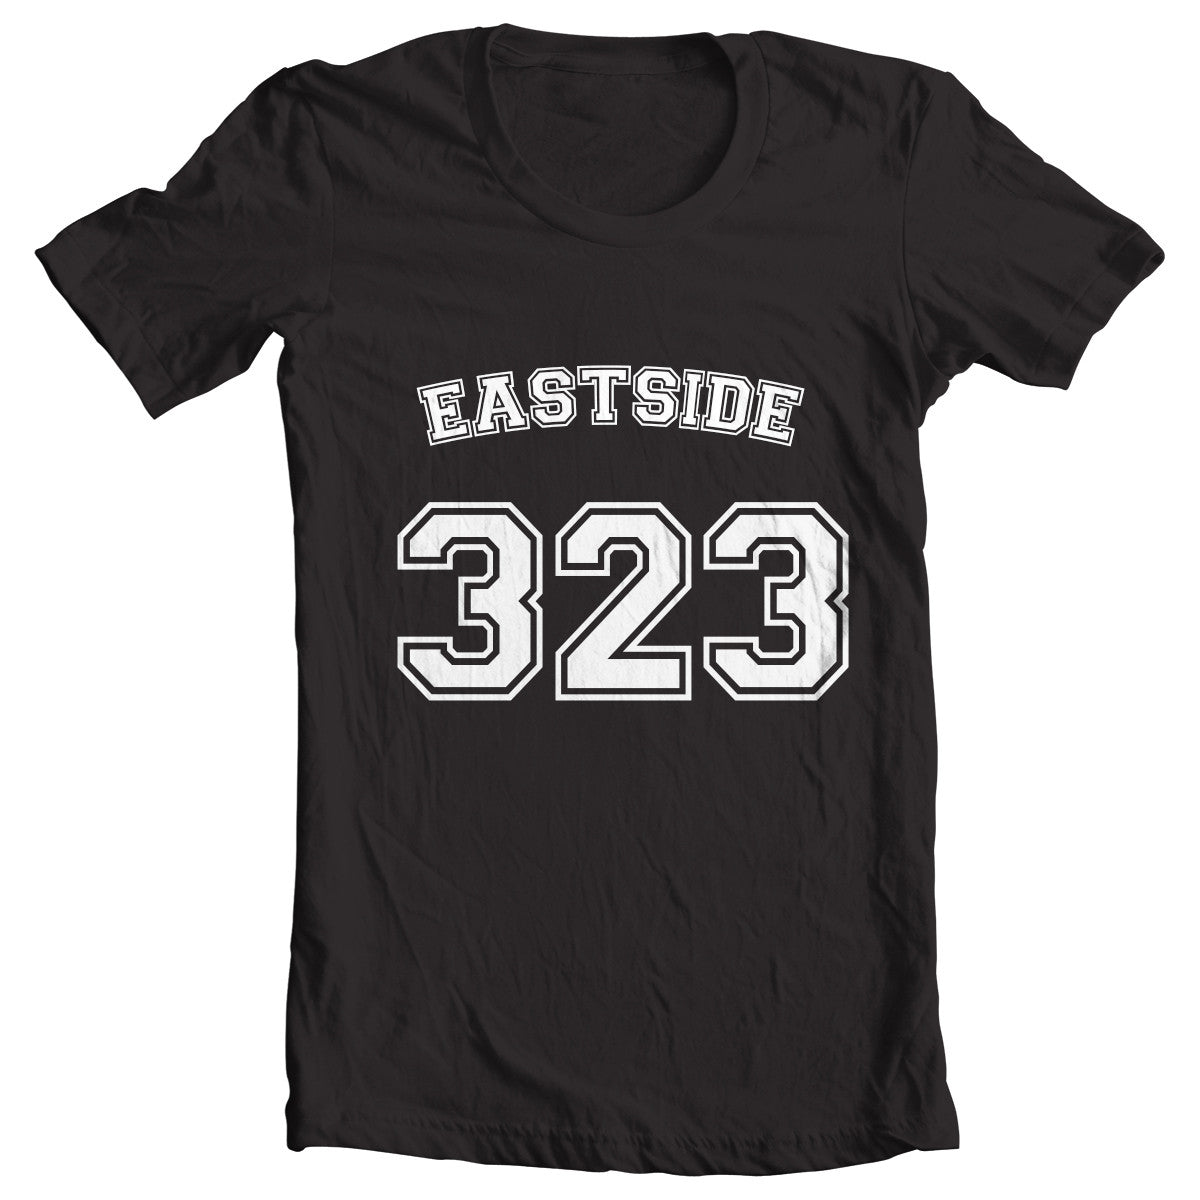 Eastside 323 Jersey